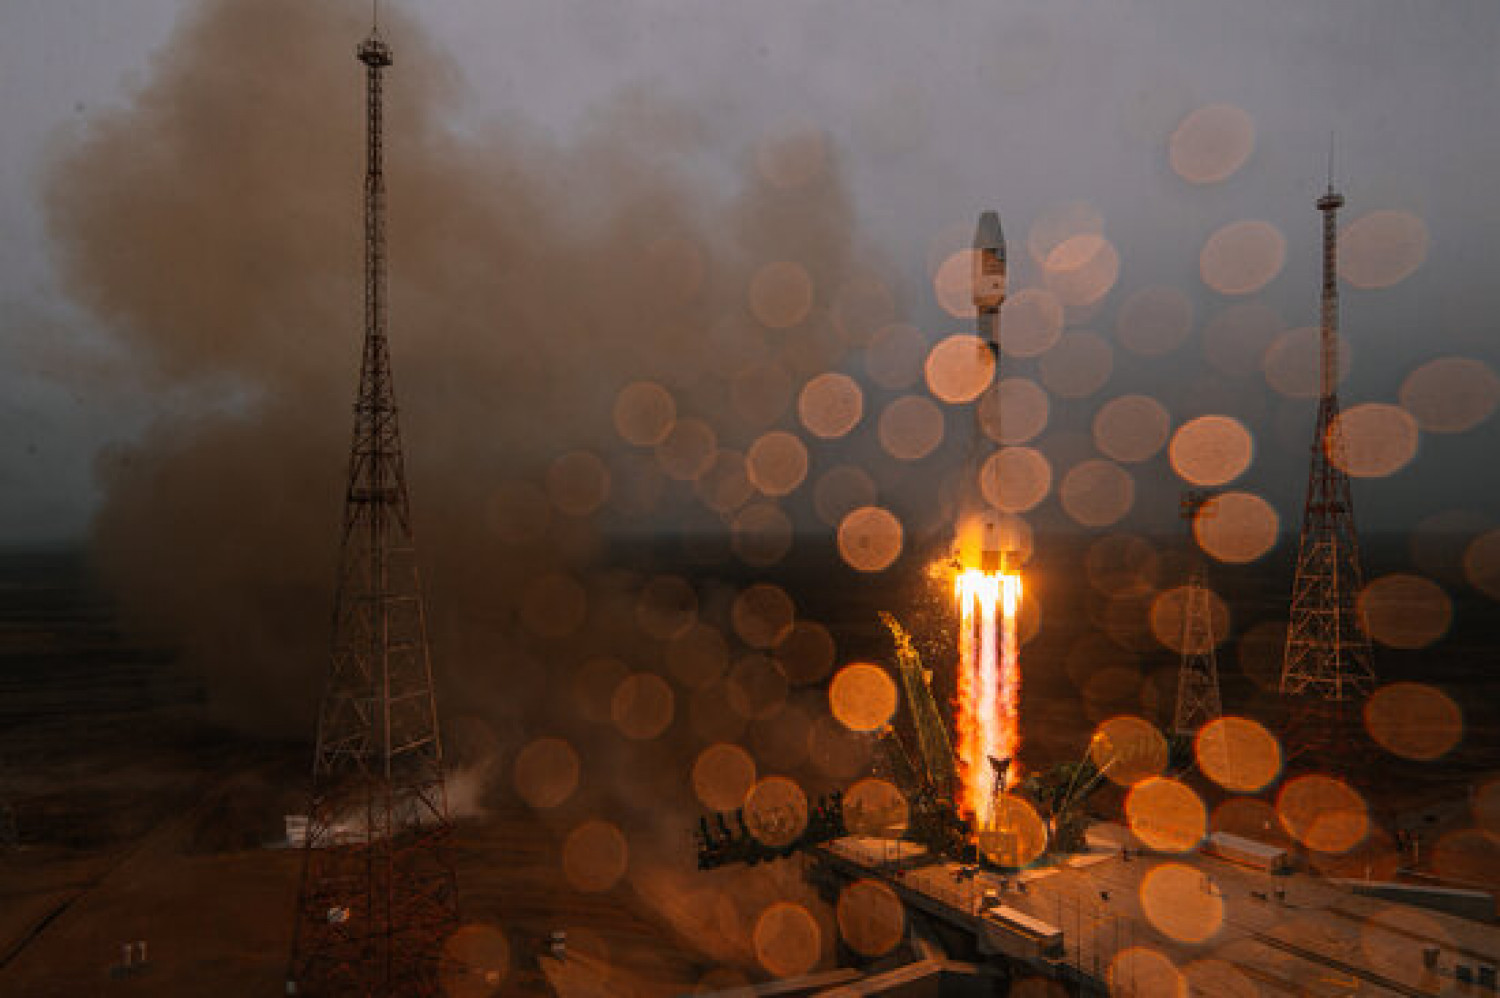 Catalonia's first nanosatellite, 'Enxaneta', launched at the Baikonur Cosmodrome in Kazakhstan (by GK Launch Services)